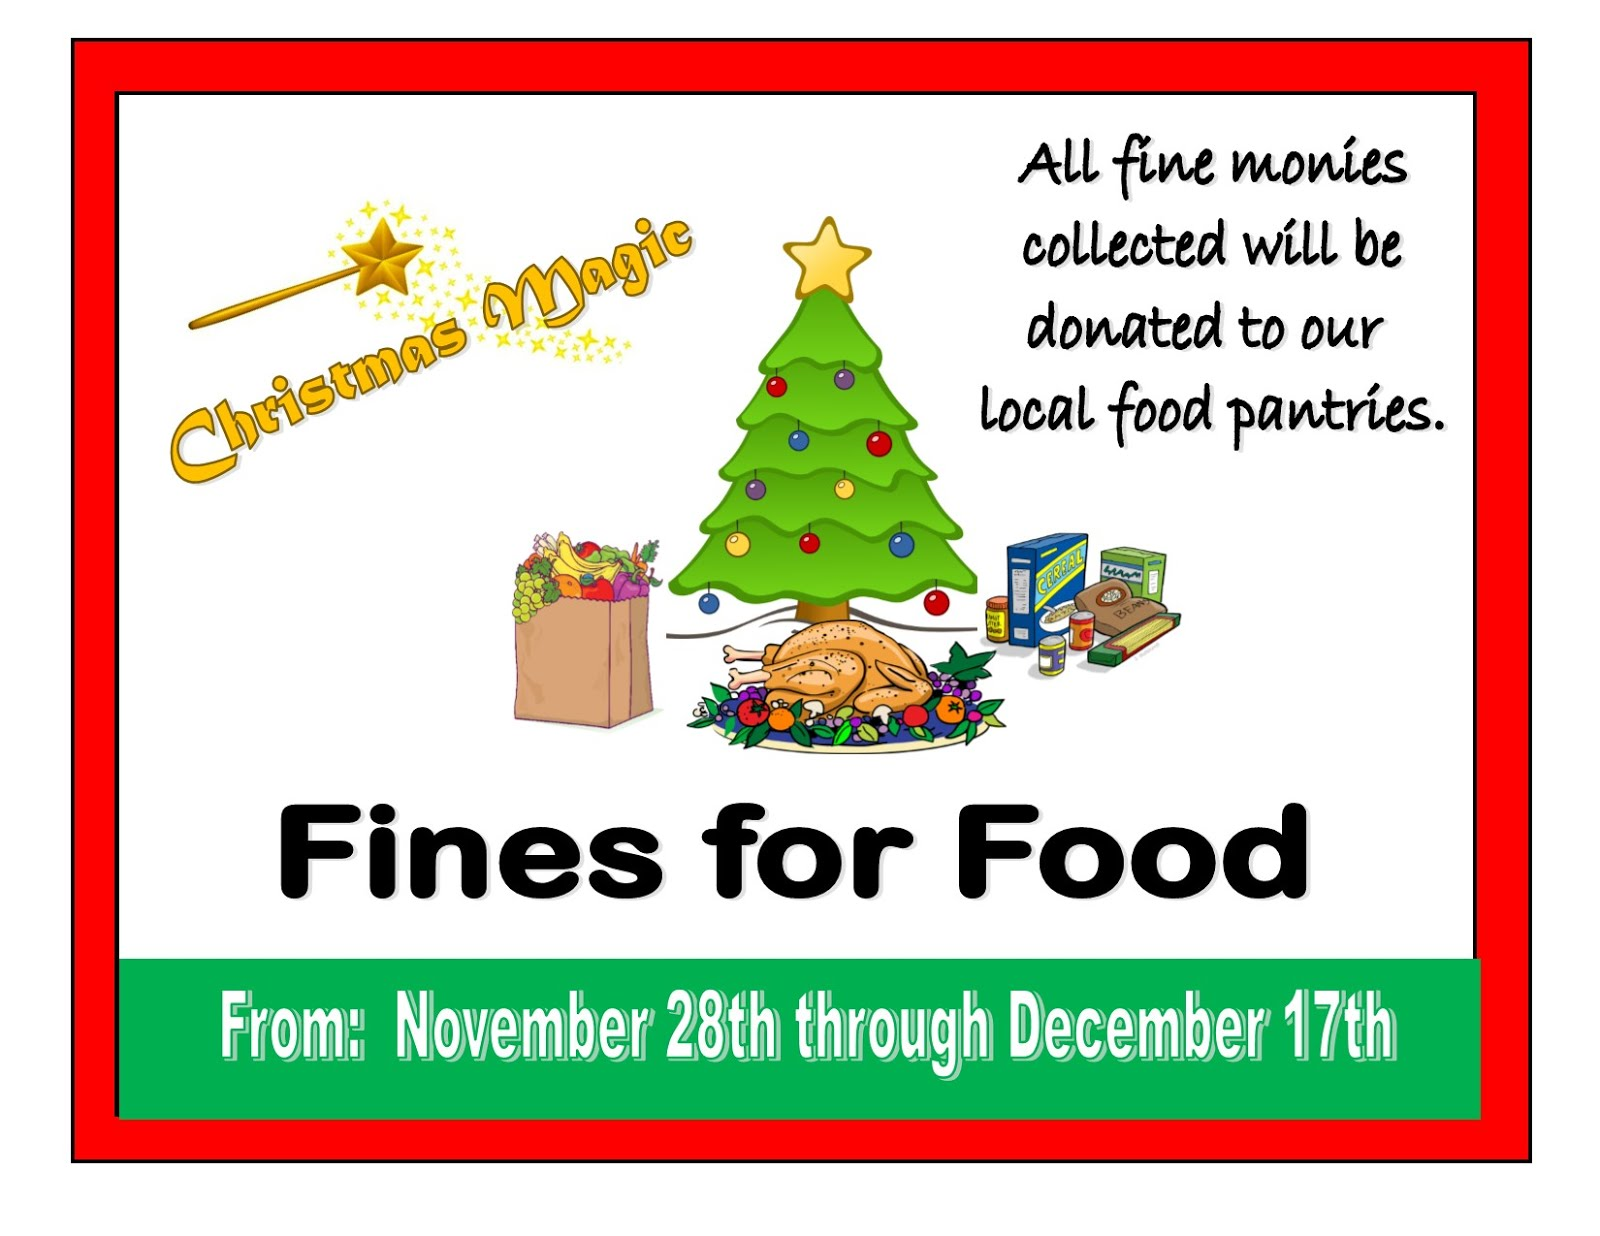 Fines for Food